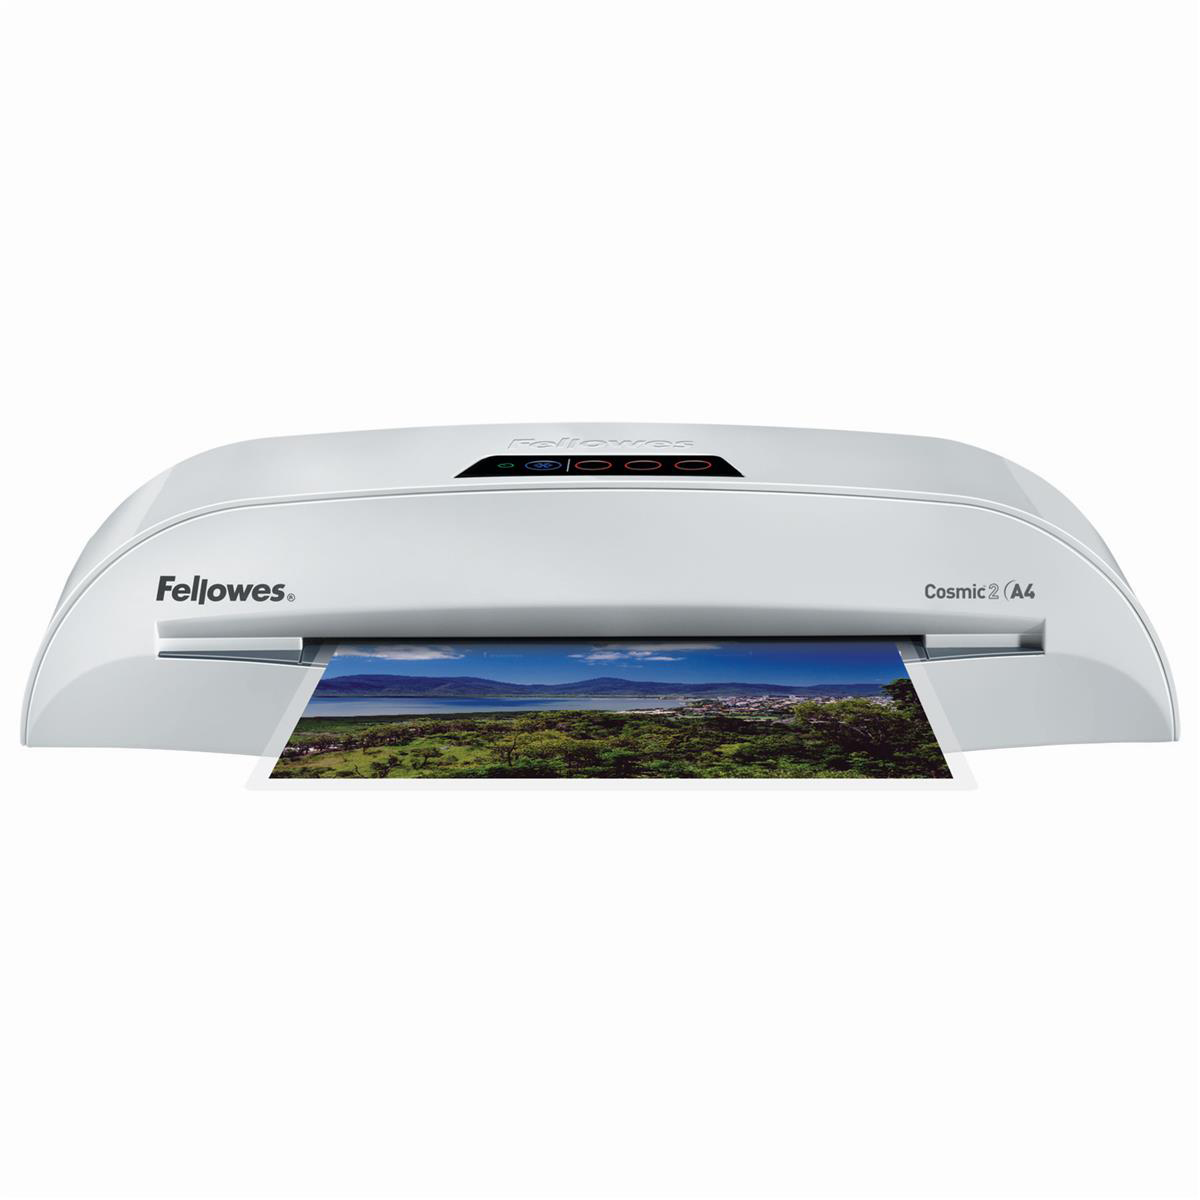 Laminating Machines Fellowes Cosmic 2 Laminator A4 Ref 5725101